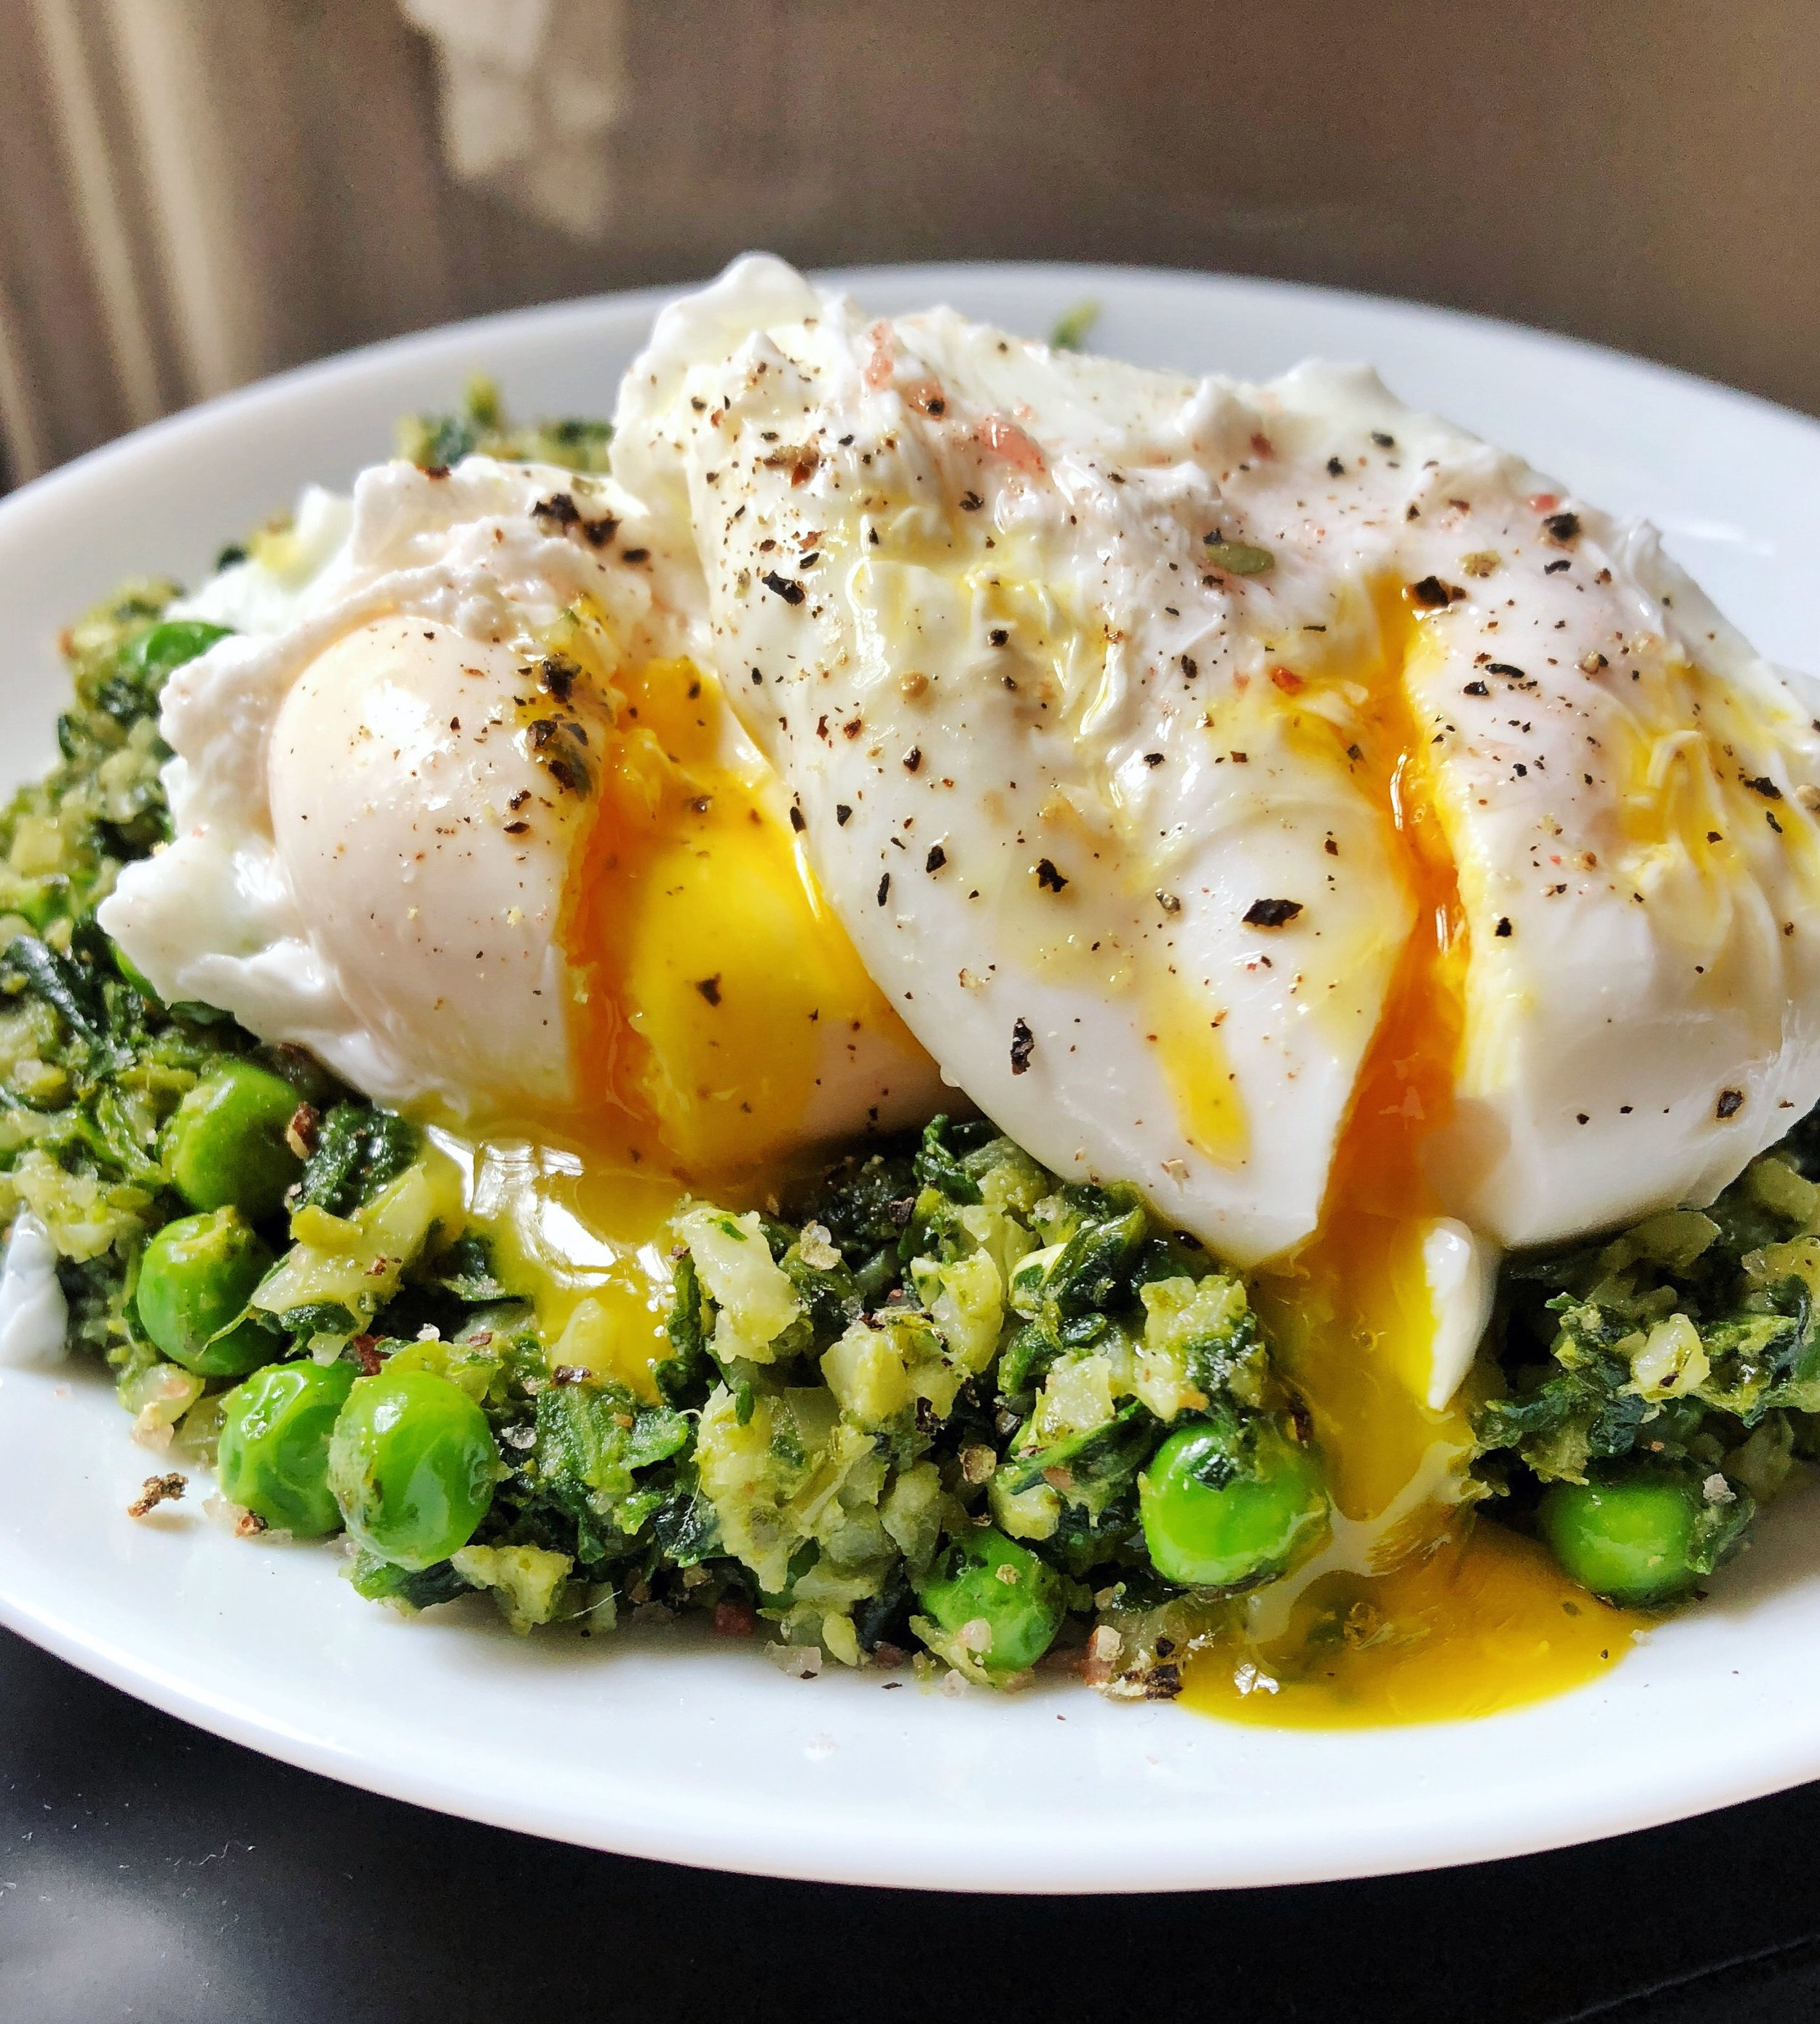 Side view of perfectly cooked poached eggs on cauliflower rice and veggies